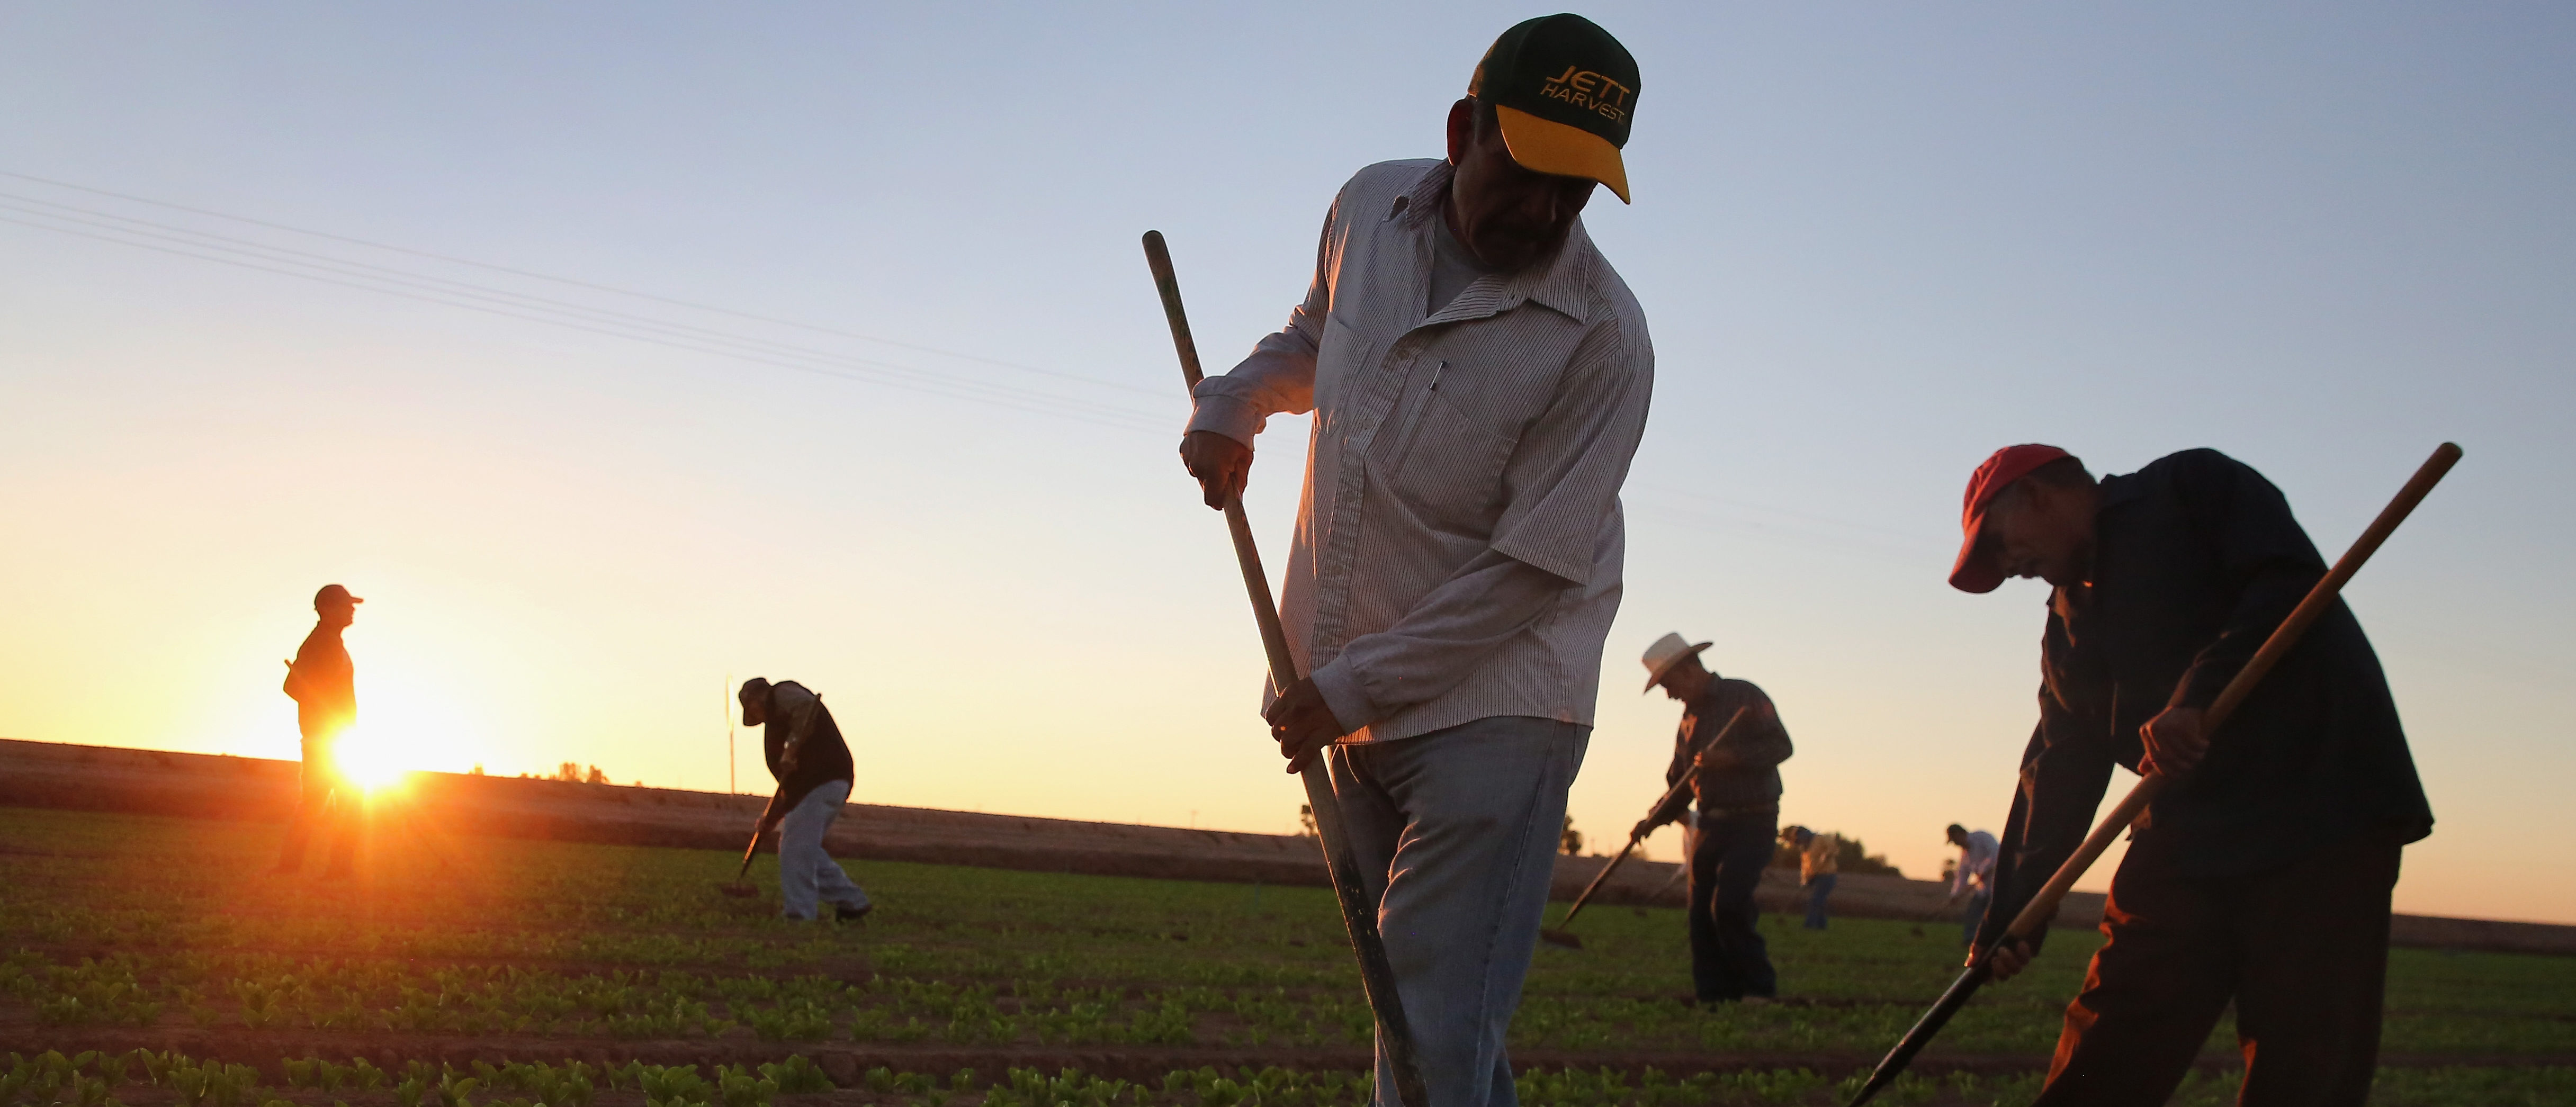 HOLTVILLE, CA - OCTOBER 08: Mexican agricultural workers cultivate lettuce on a farm on October 8, 2013 in Holtville, California. Thousands of Mexican workers cross the border legally each night from Mexicali, Mexico into Calexico, CA, where they pick up work as agricultural day laborers in California's fertile Imperial Valley. Although the Imperial Valley, irrigated from water diverted from the Colorado River, is one of the most productive agricultural areas in the United States, it has one of the highest unemployment rates in California, at more than 25 percent. Mexican farm workers commute each day from Mexicali to work in the fields for about $9 an hour, which many local U.S. residents shun as too low pay. (Photo by John Moore/Getty Images)